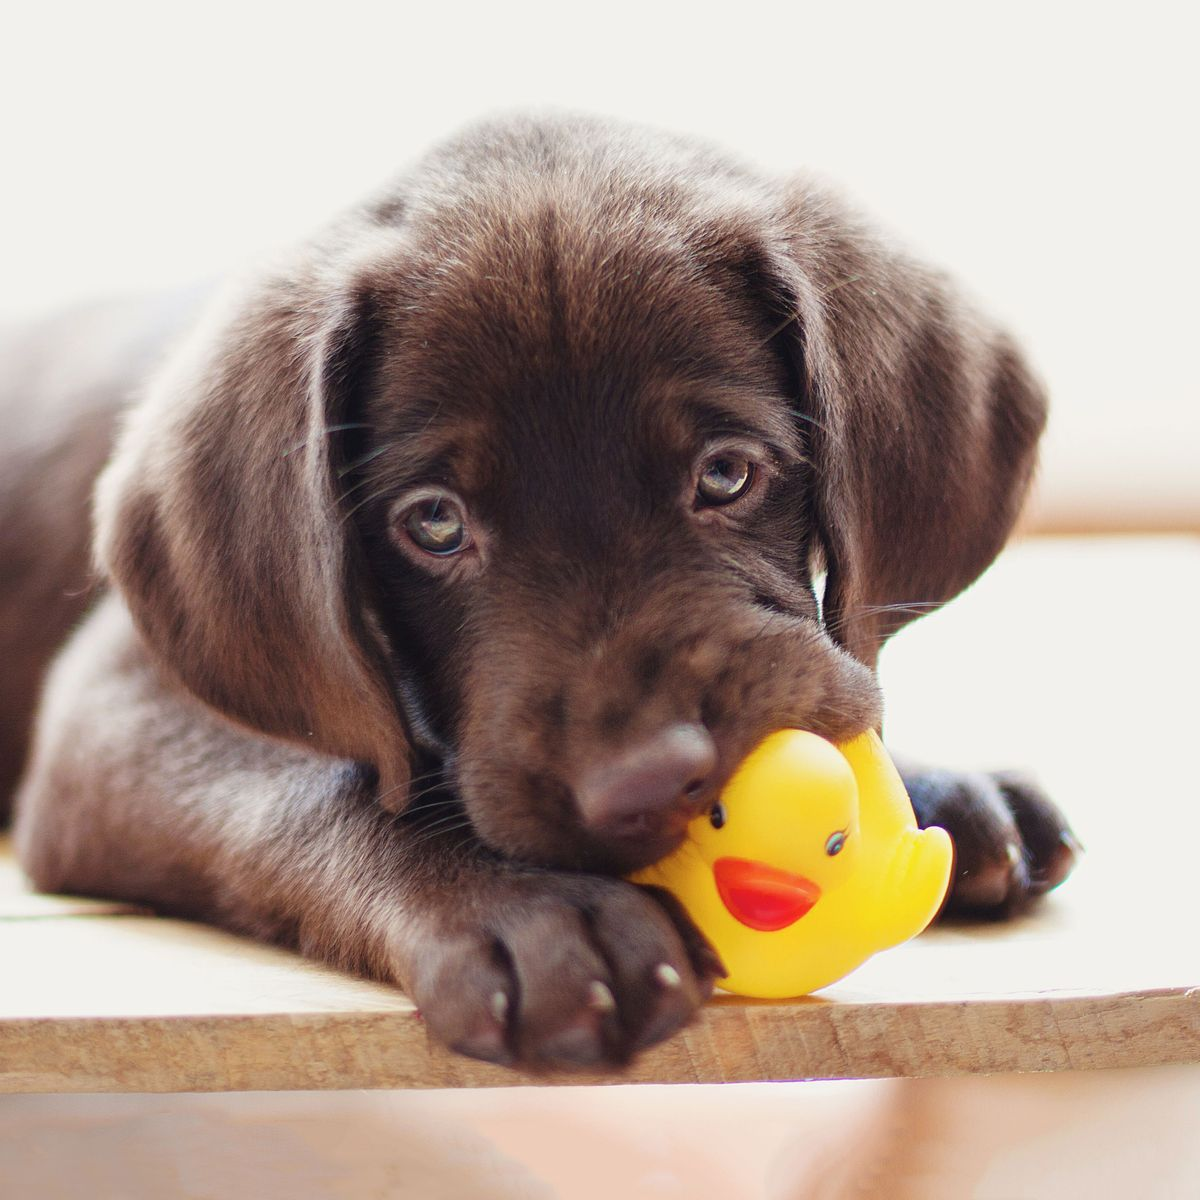 13 Best Things For Teething Puppies 2019 The Strategist New York Magazine